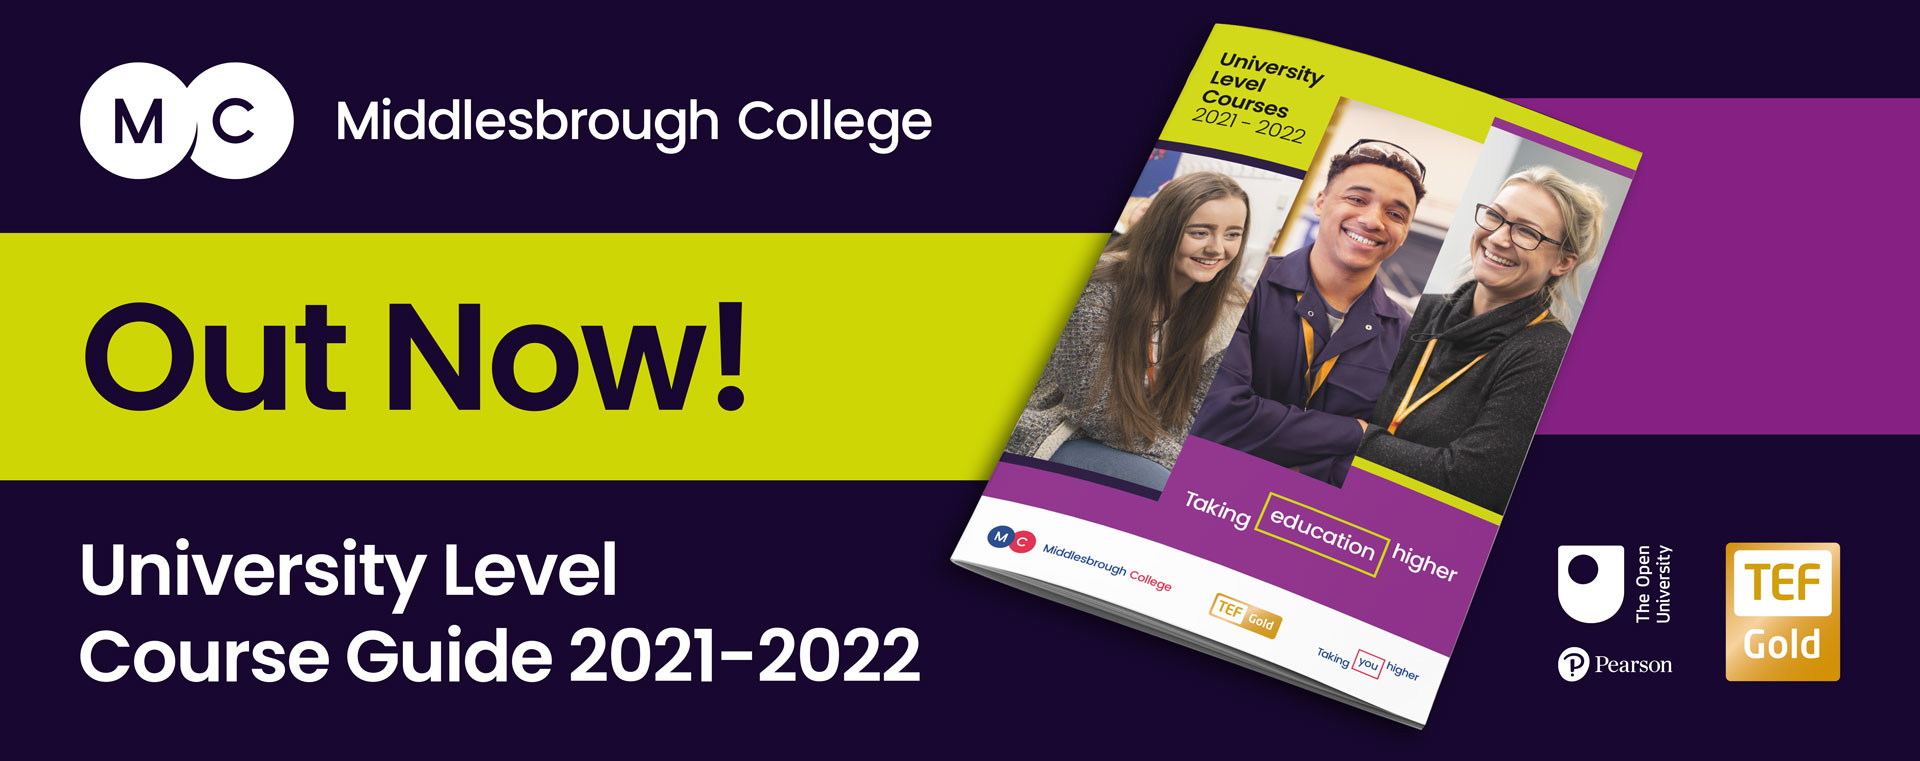 Middlesbrough College HE course guide